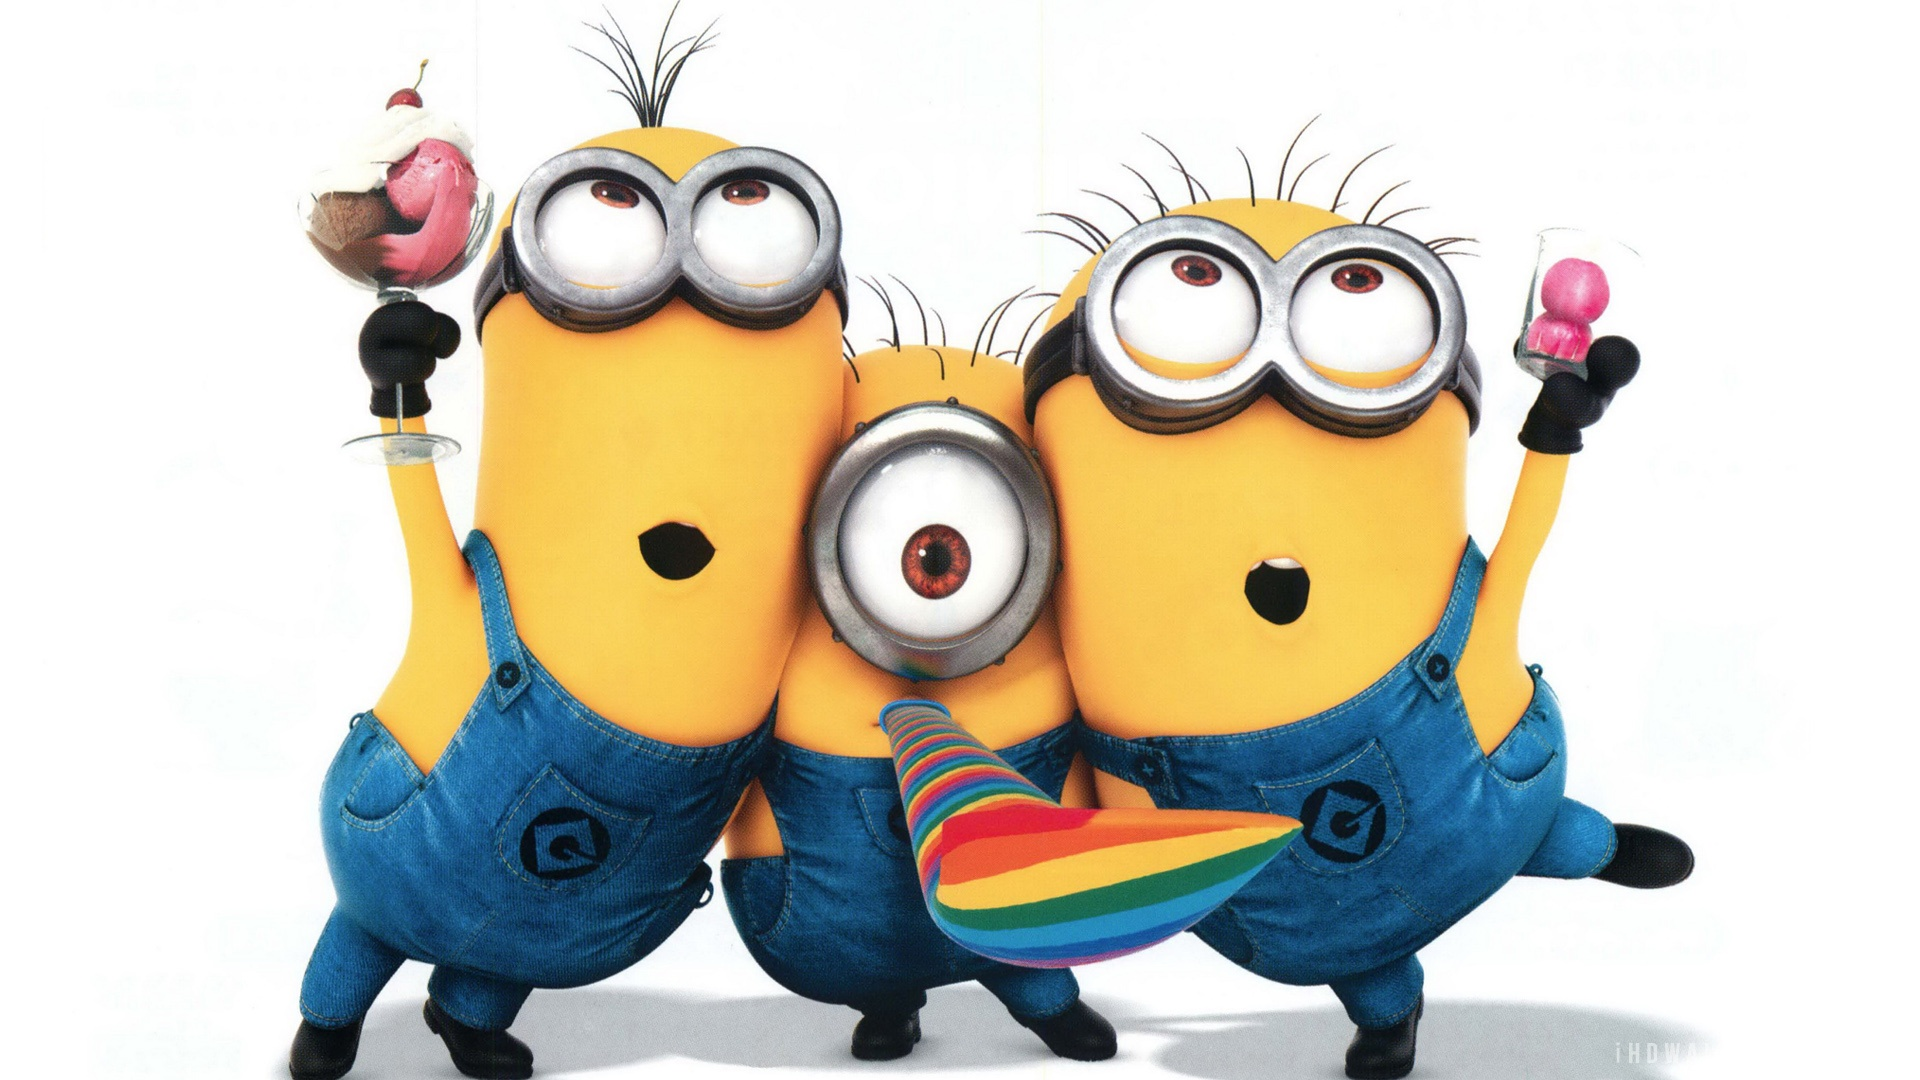 High Resolution Wallpaper | Minions 1920x1080 px